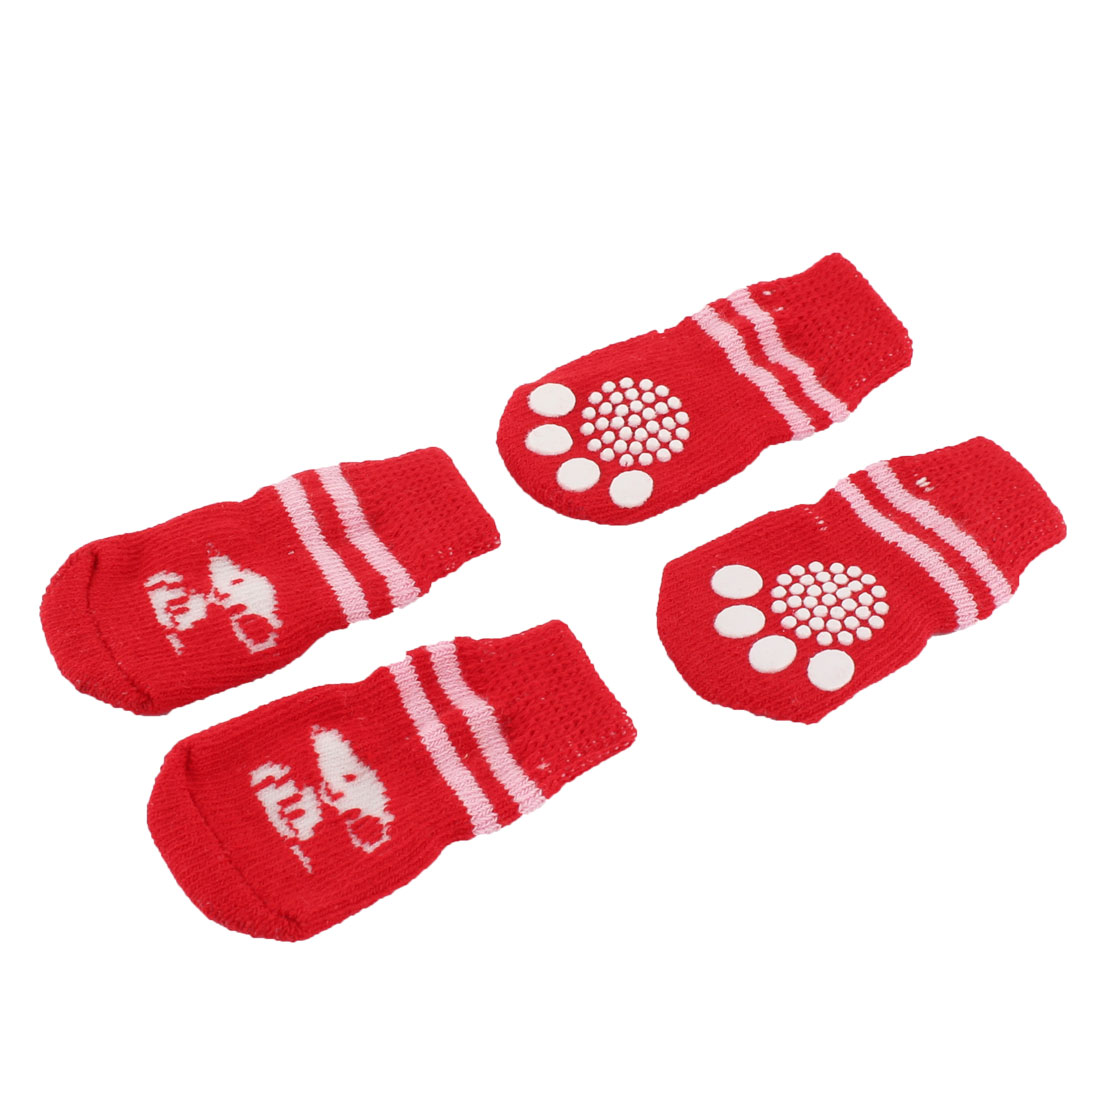 Cotton Paw Printed Elastic Knitted Warm Skid Bottom Pet Dog Socks 2 Pairs